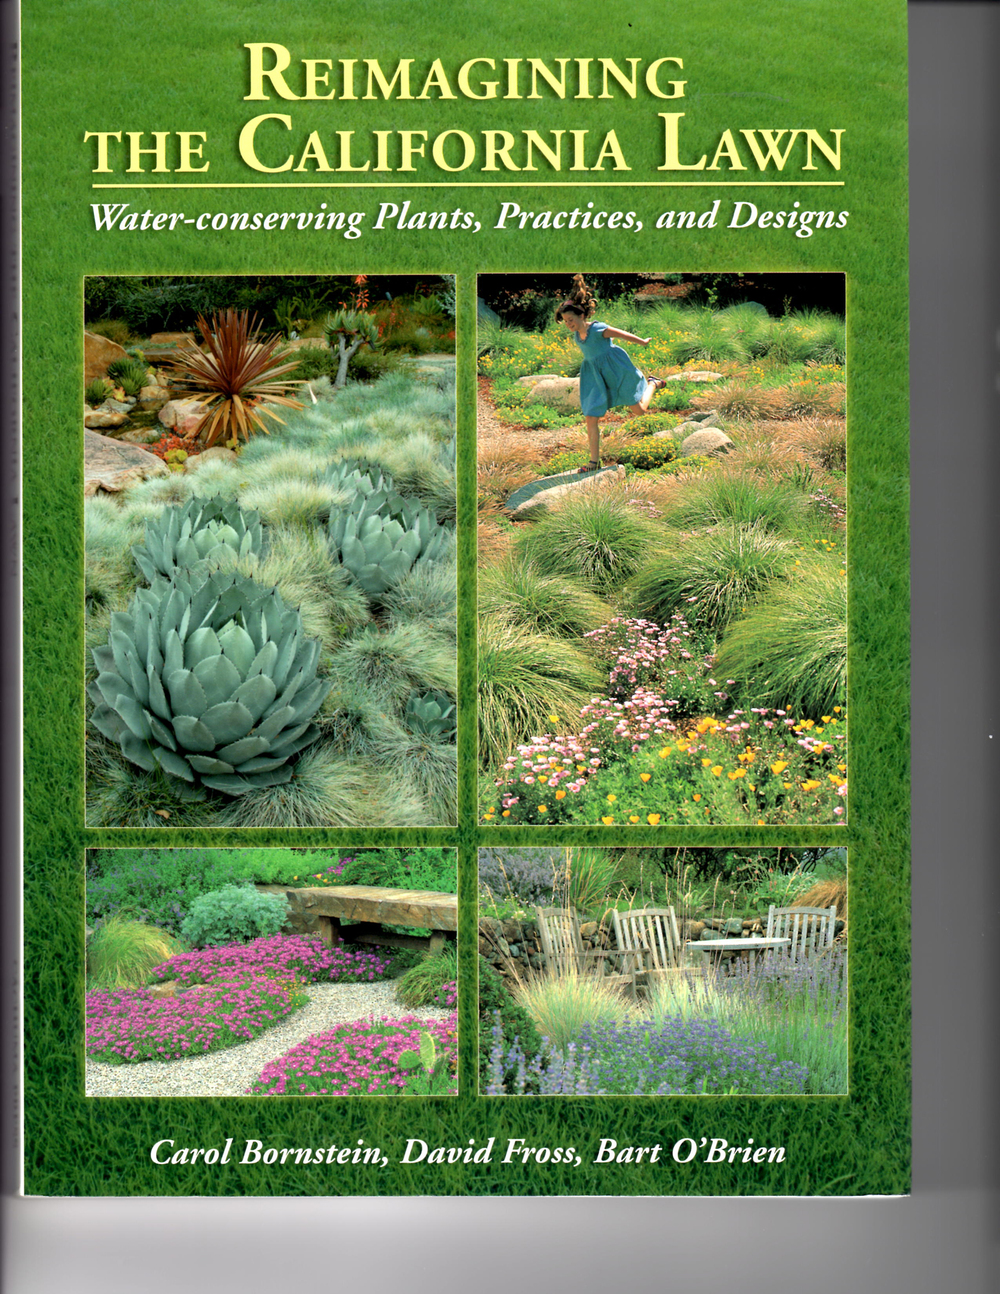 Reimagining the California Lawn.jpg